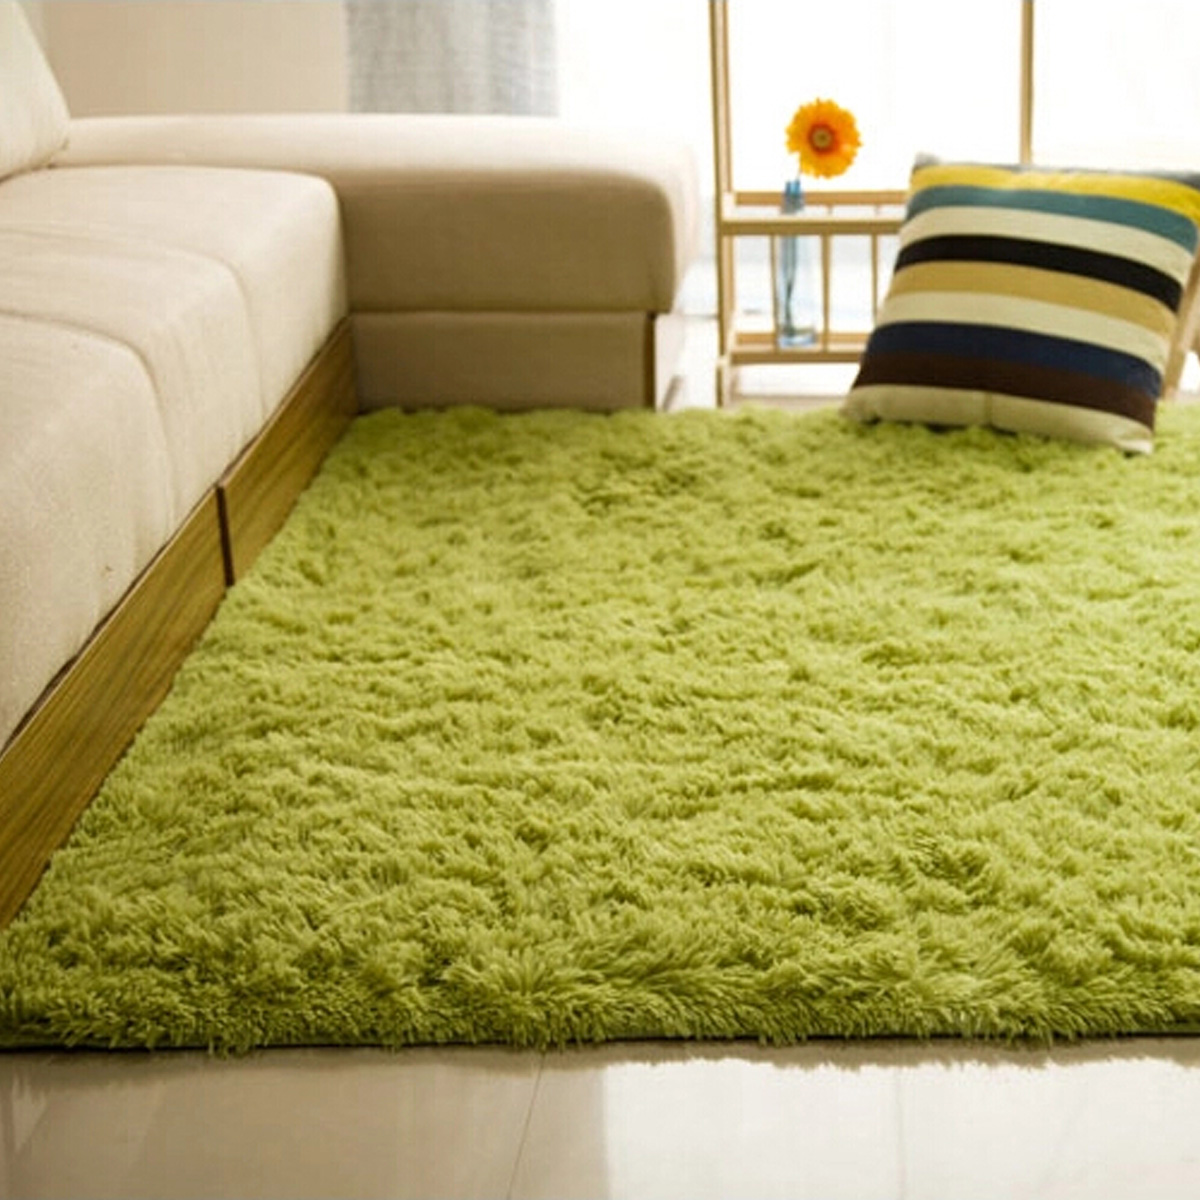 Rooms With Lime Green Carpet